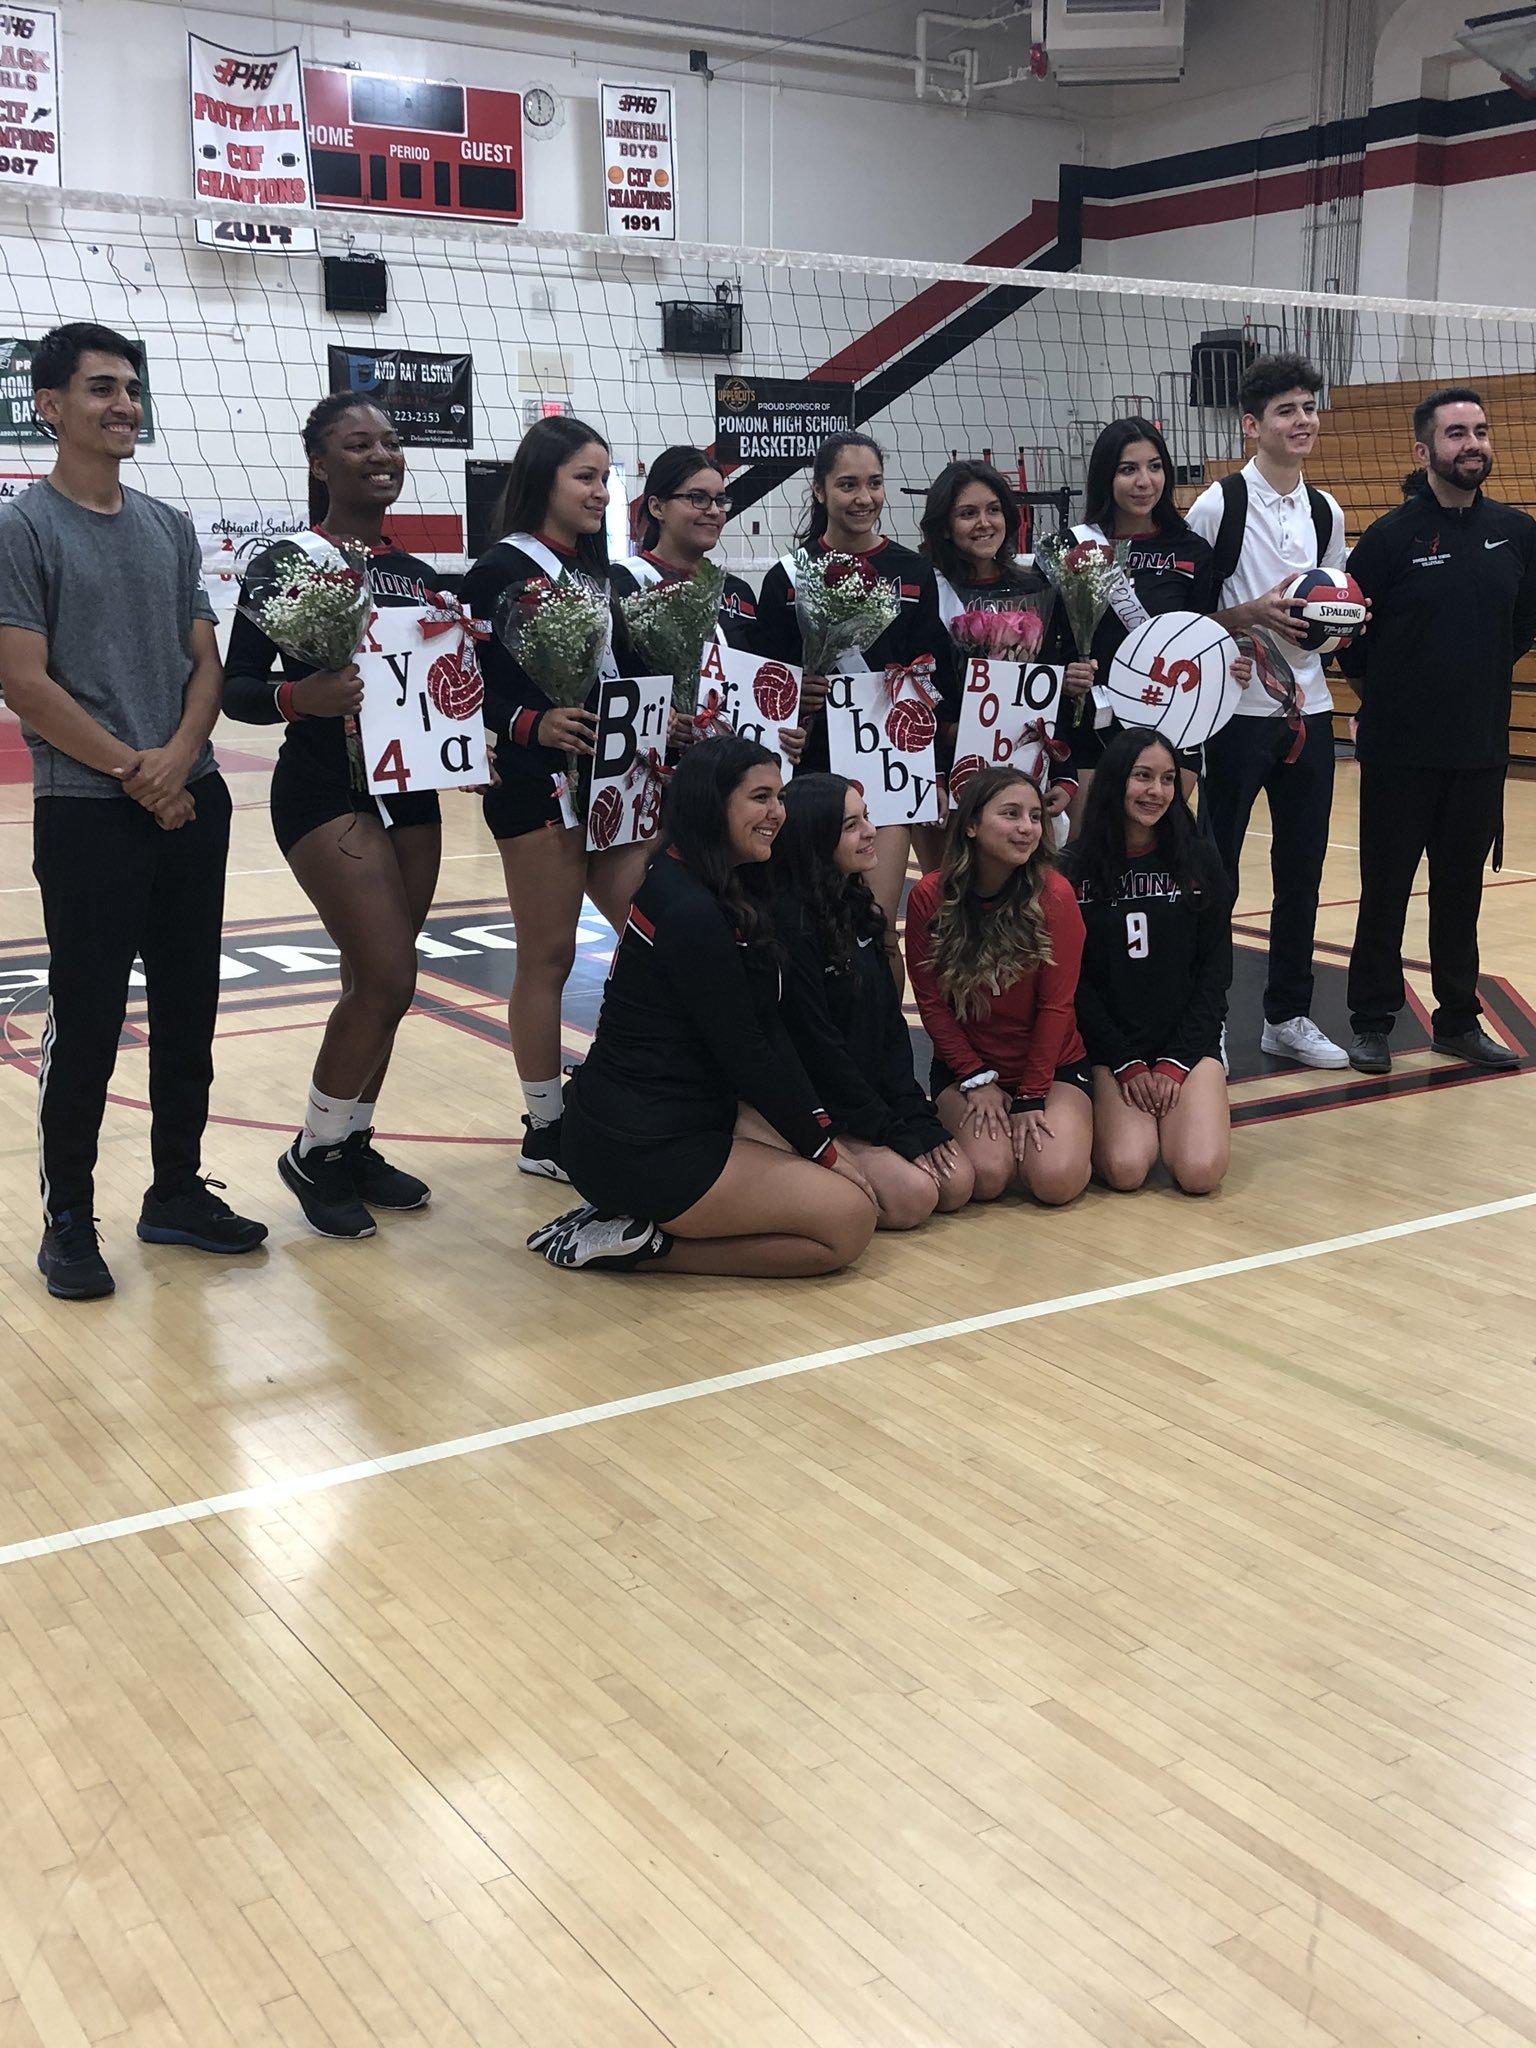 Congratulations to the Girls Volleyball team on your WIN! #Volleyball #proud2bepusd #PomonaHigh